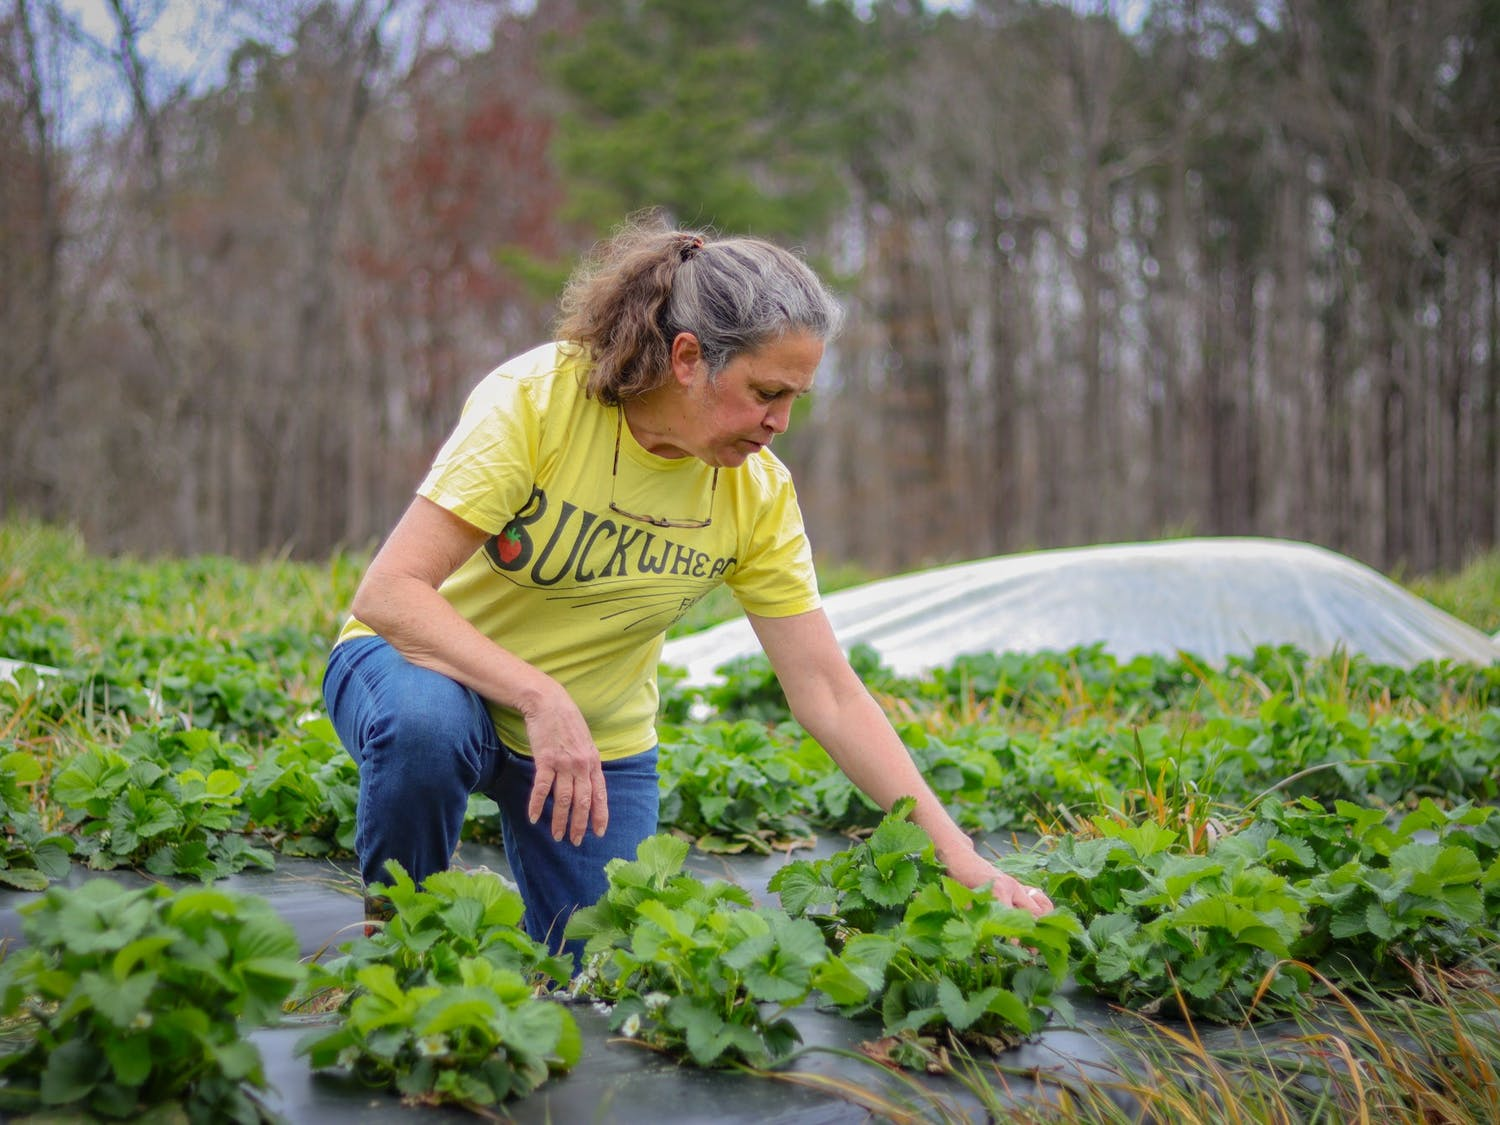 """Karma Lee is the owner of Buckwheat Farms which has been open in Apex for 23 years. """"Last year when the pandemic hit, we weren't even sure we were going to be able to be open for business, but when we found out we were, we knew we had to make a lot of changes,"""" said Lee."""